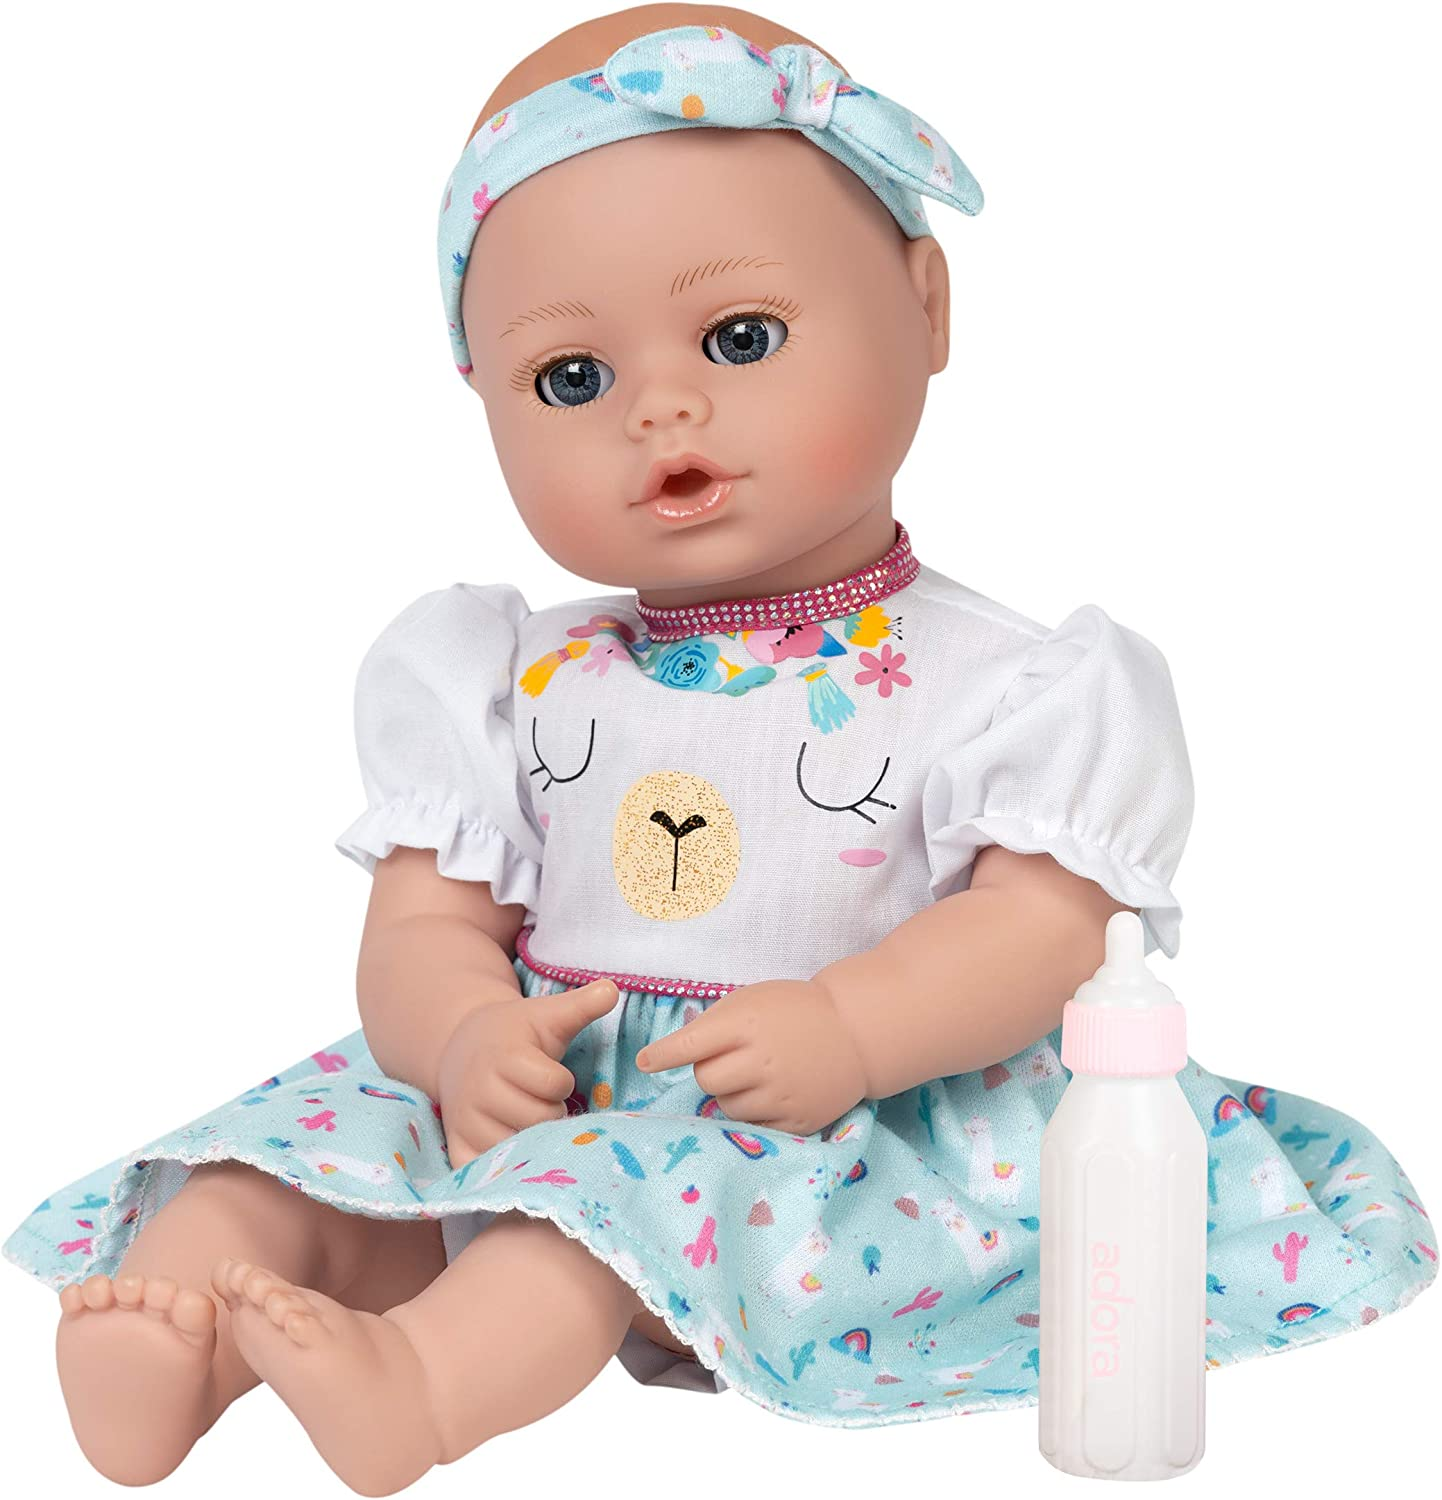 Amazon.com: Adora My First Baby Doll - Playtime Llama Magic, 13 inches,  Open Close Eyes, Can Suck Her Thumb: Toys & Games